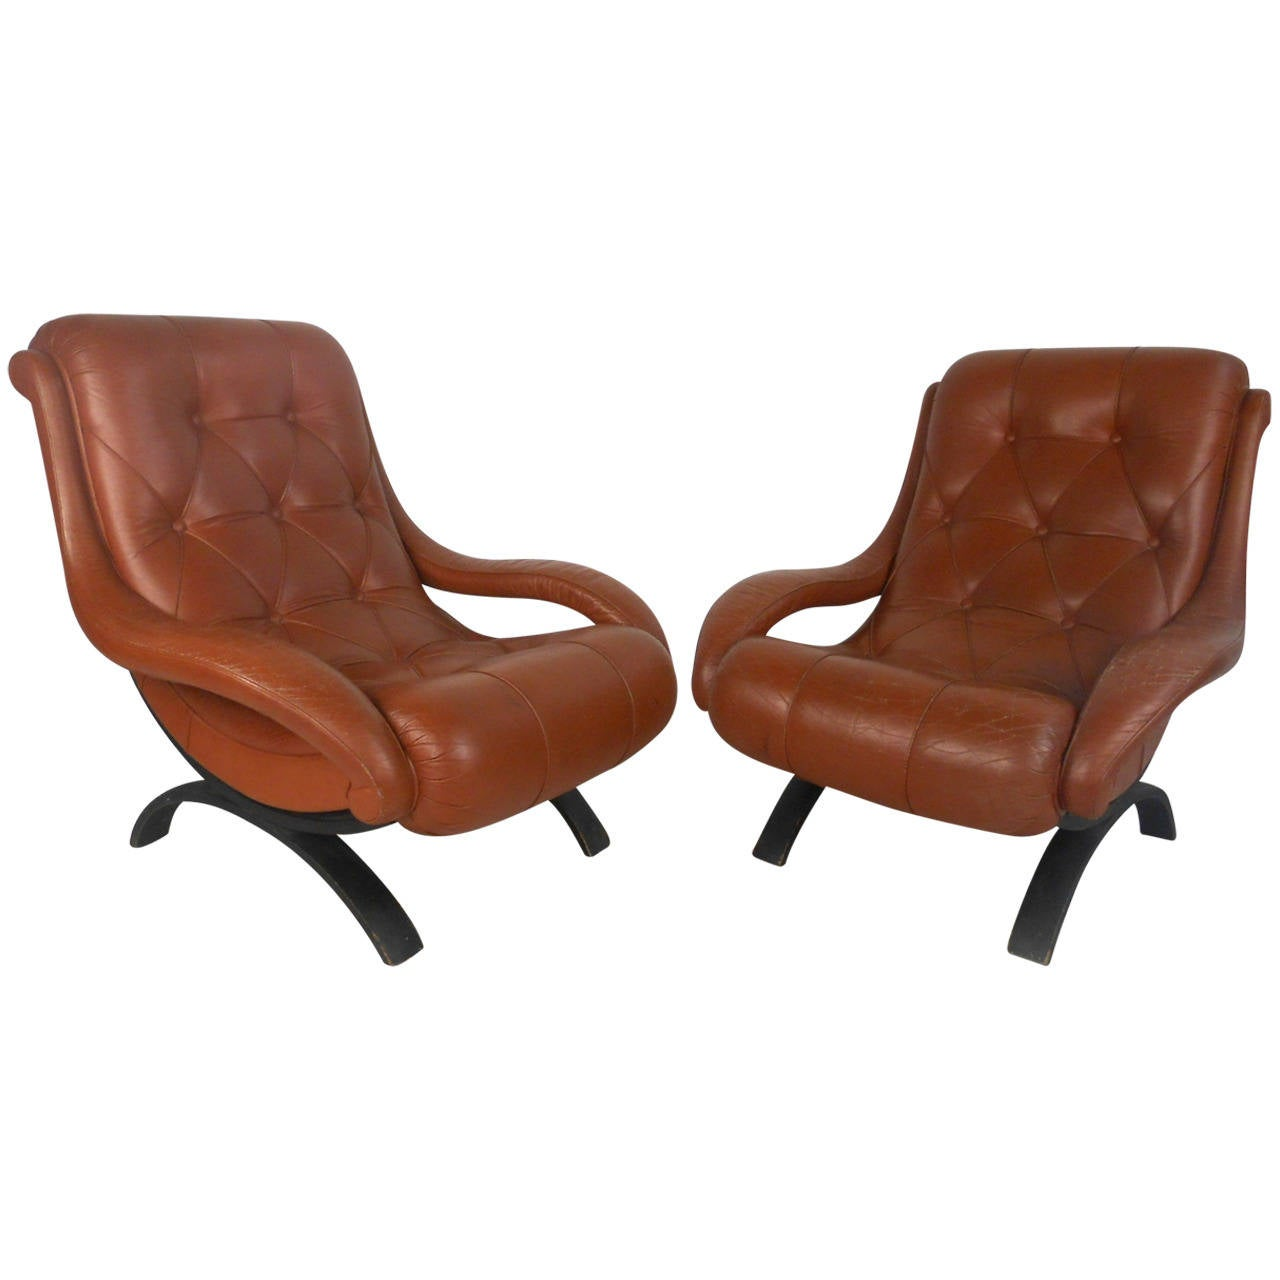 Weird Furniture For Sale: Pair Of Unique Mid-Century Tufted Leather Lounge Chairs